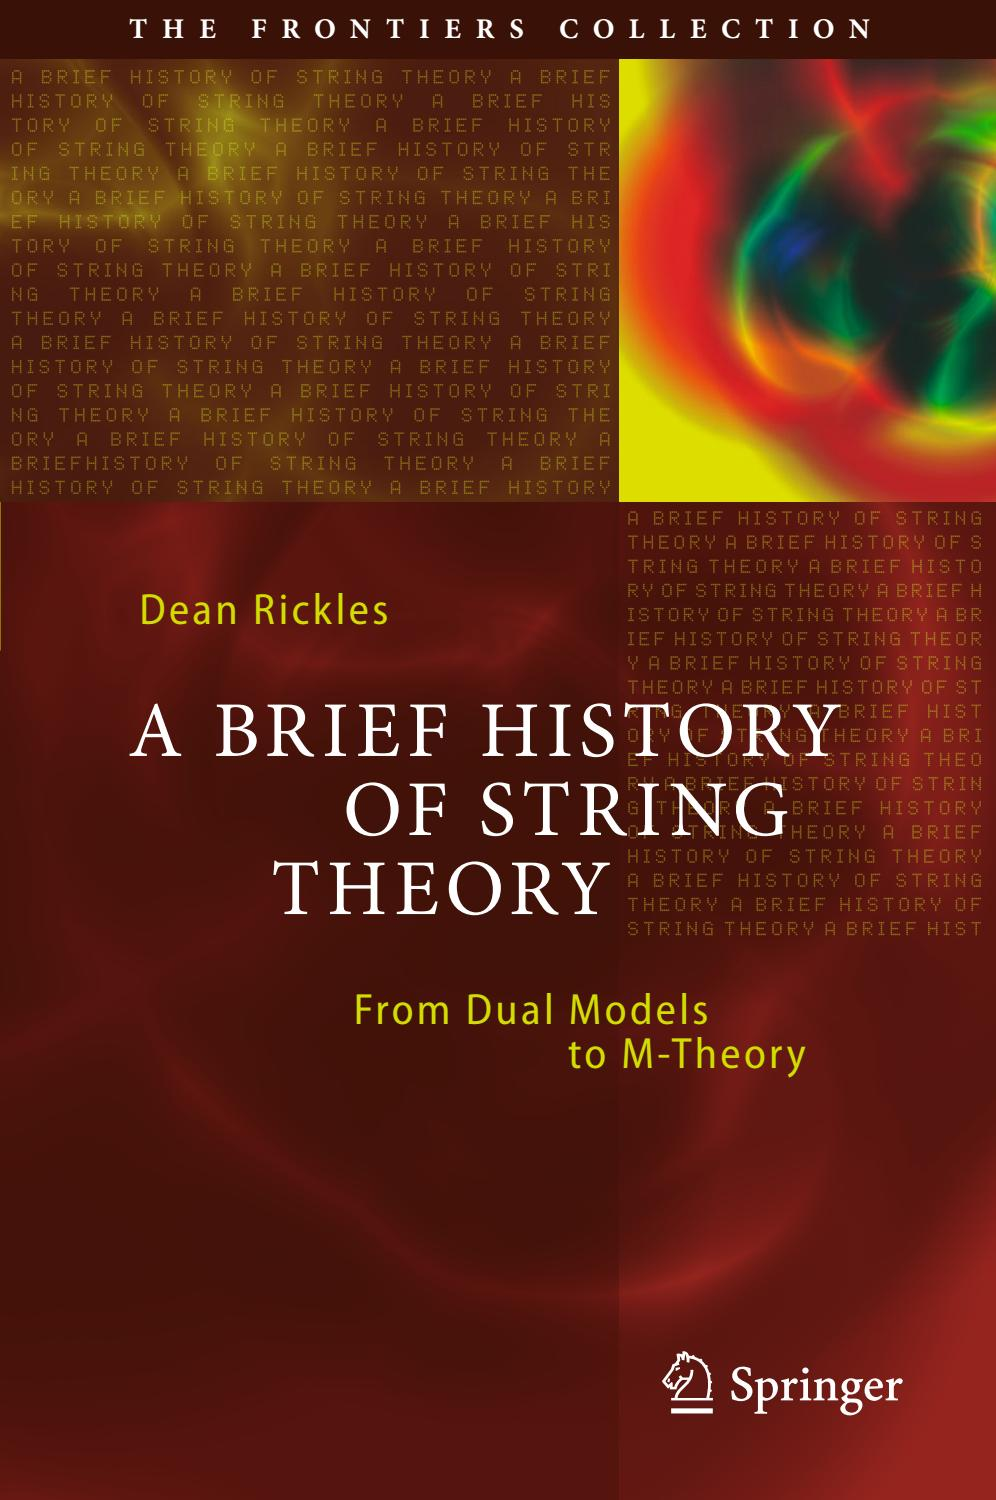 brief history of string theory book14 by nguyễn quang huy issuu